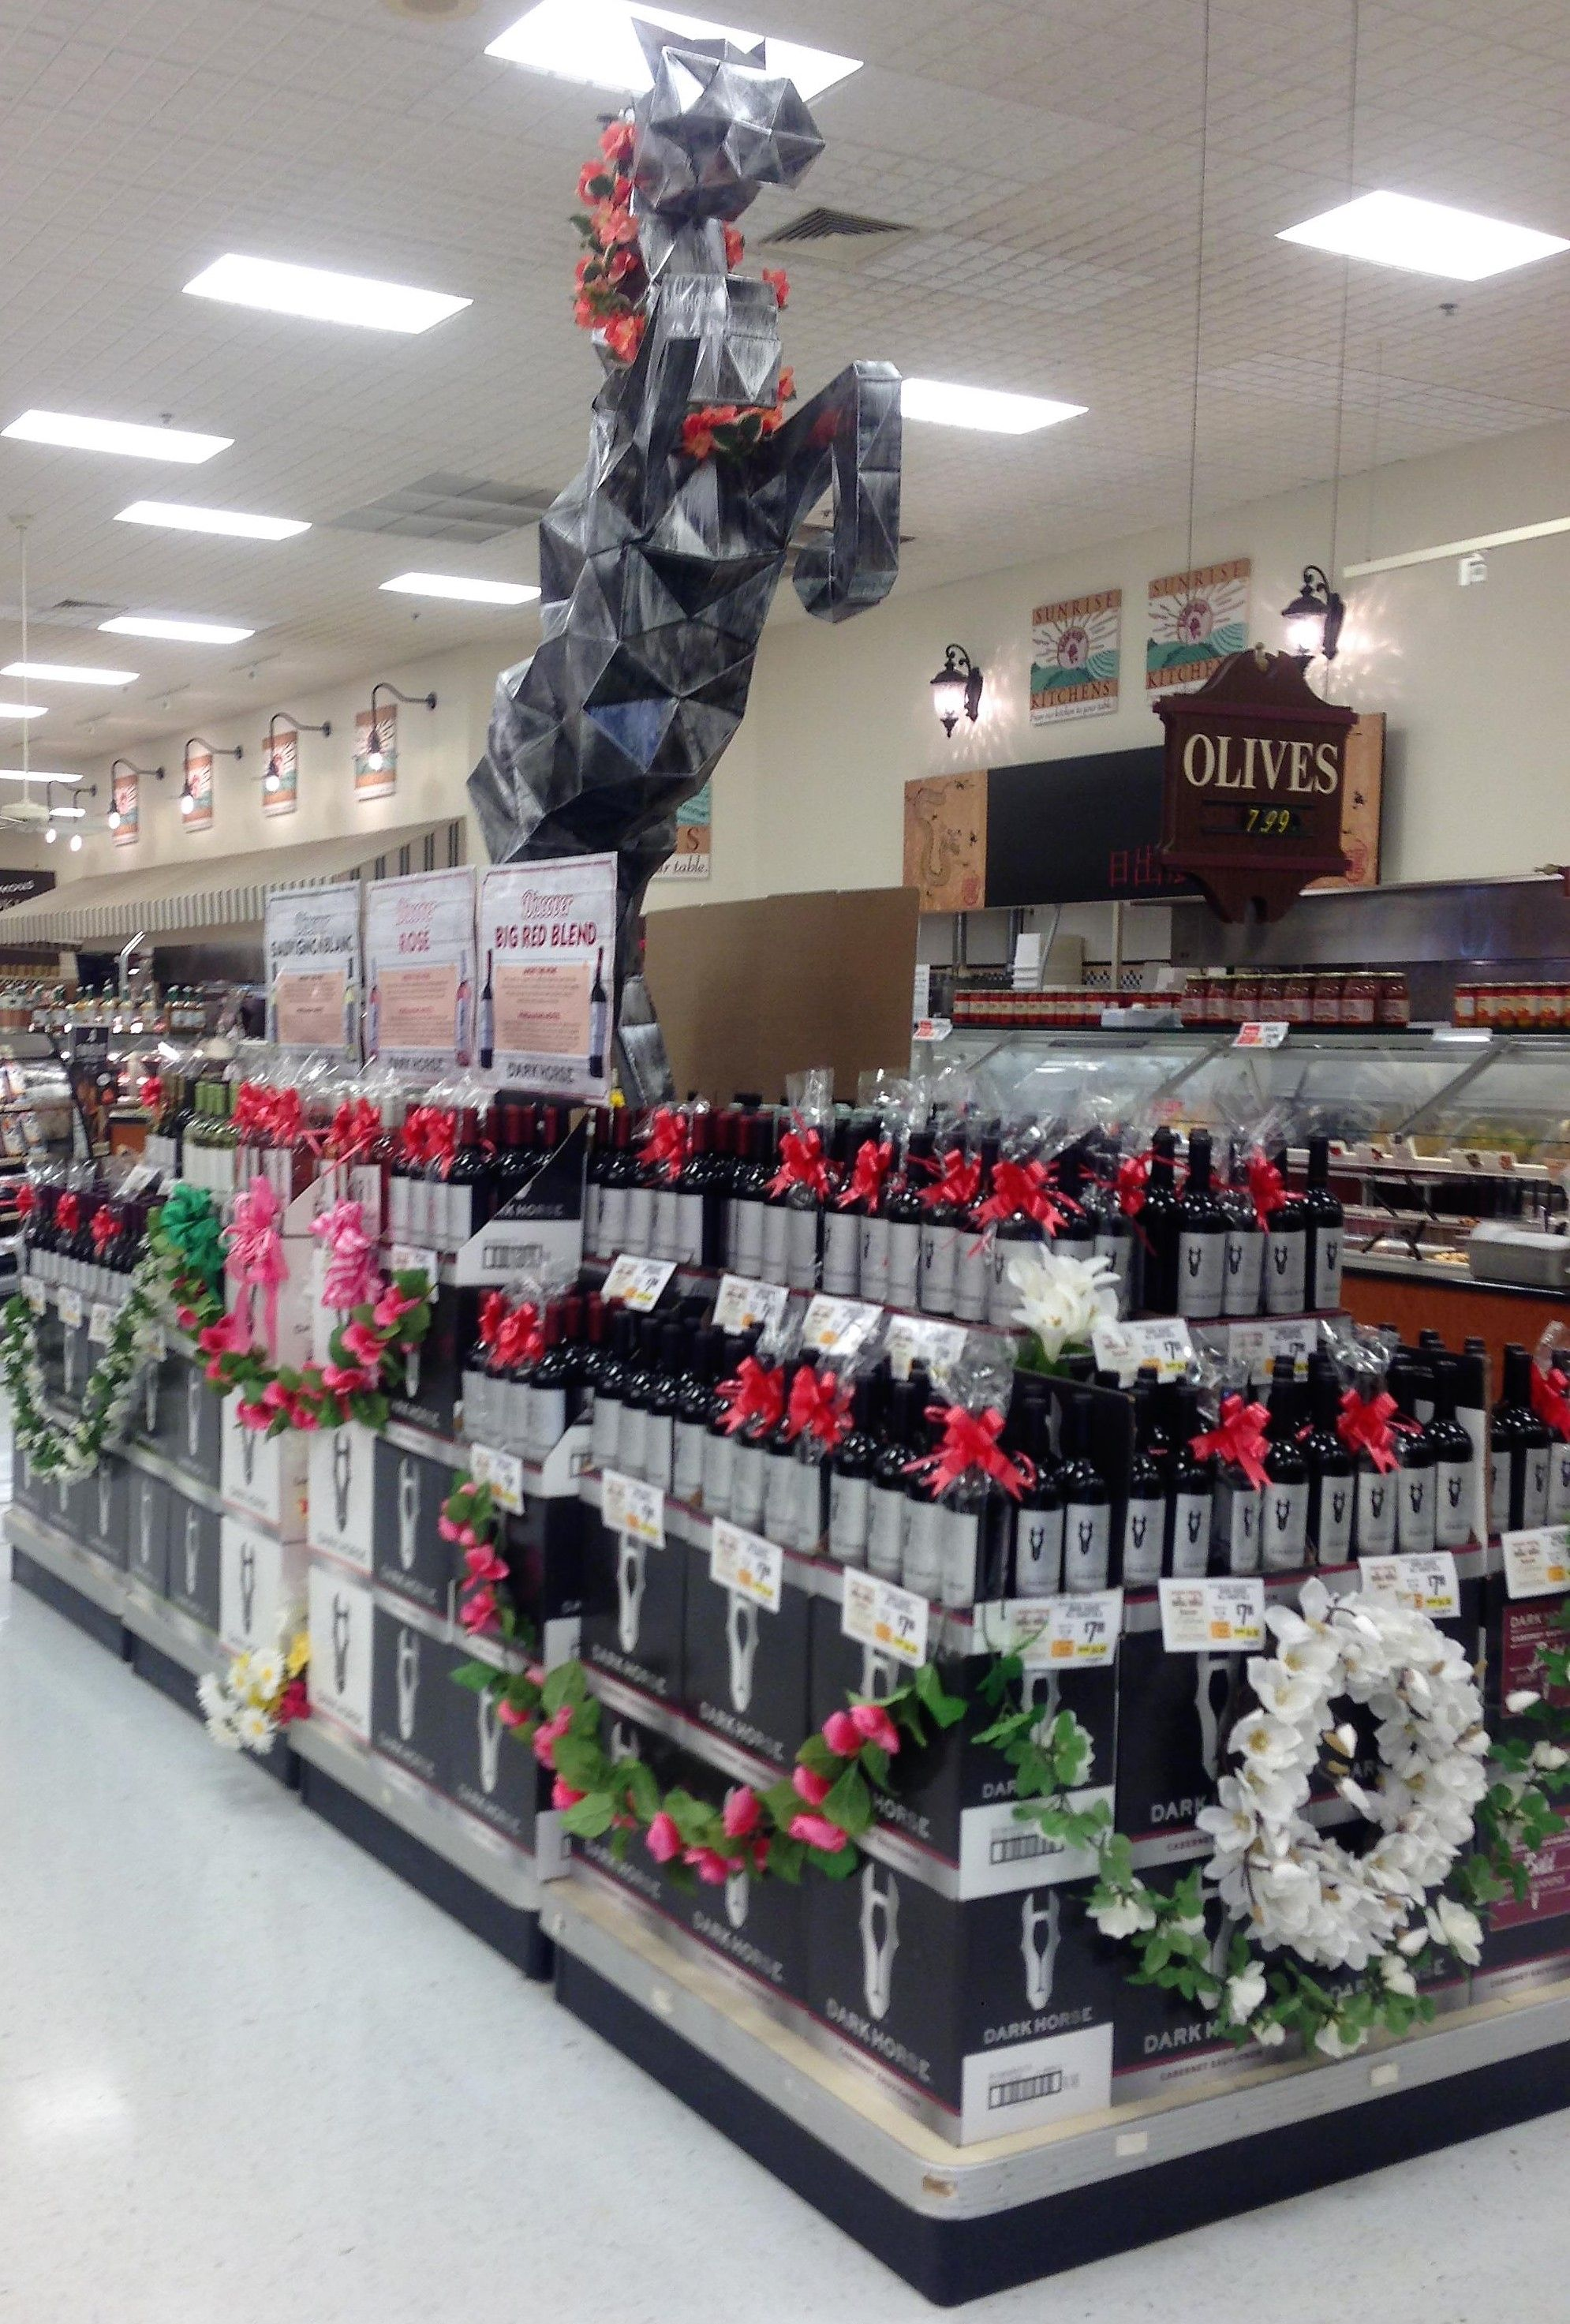 Dark Horse Wine Display At Shoprite Parsippany Nj S Sunrise